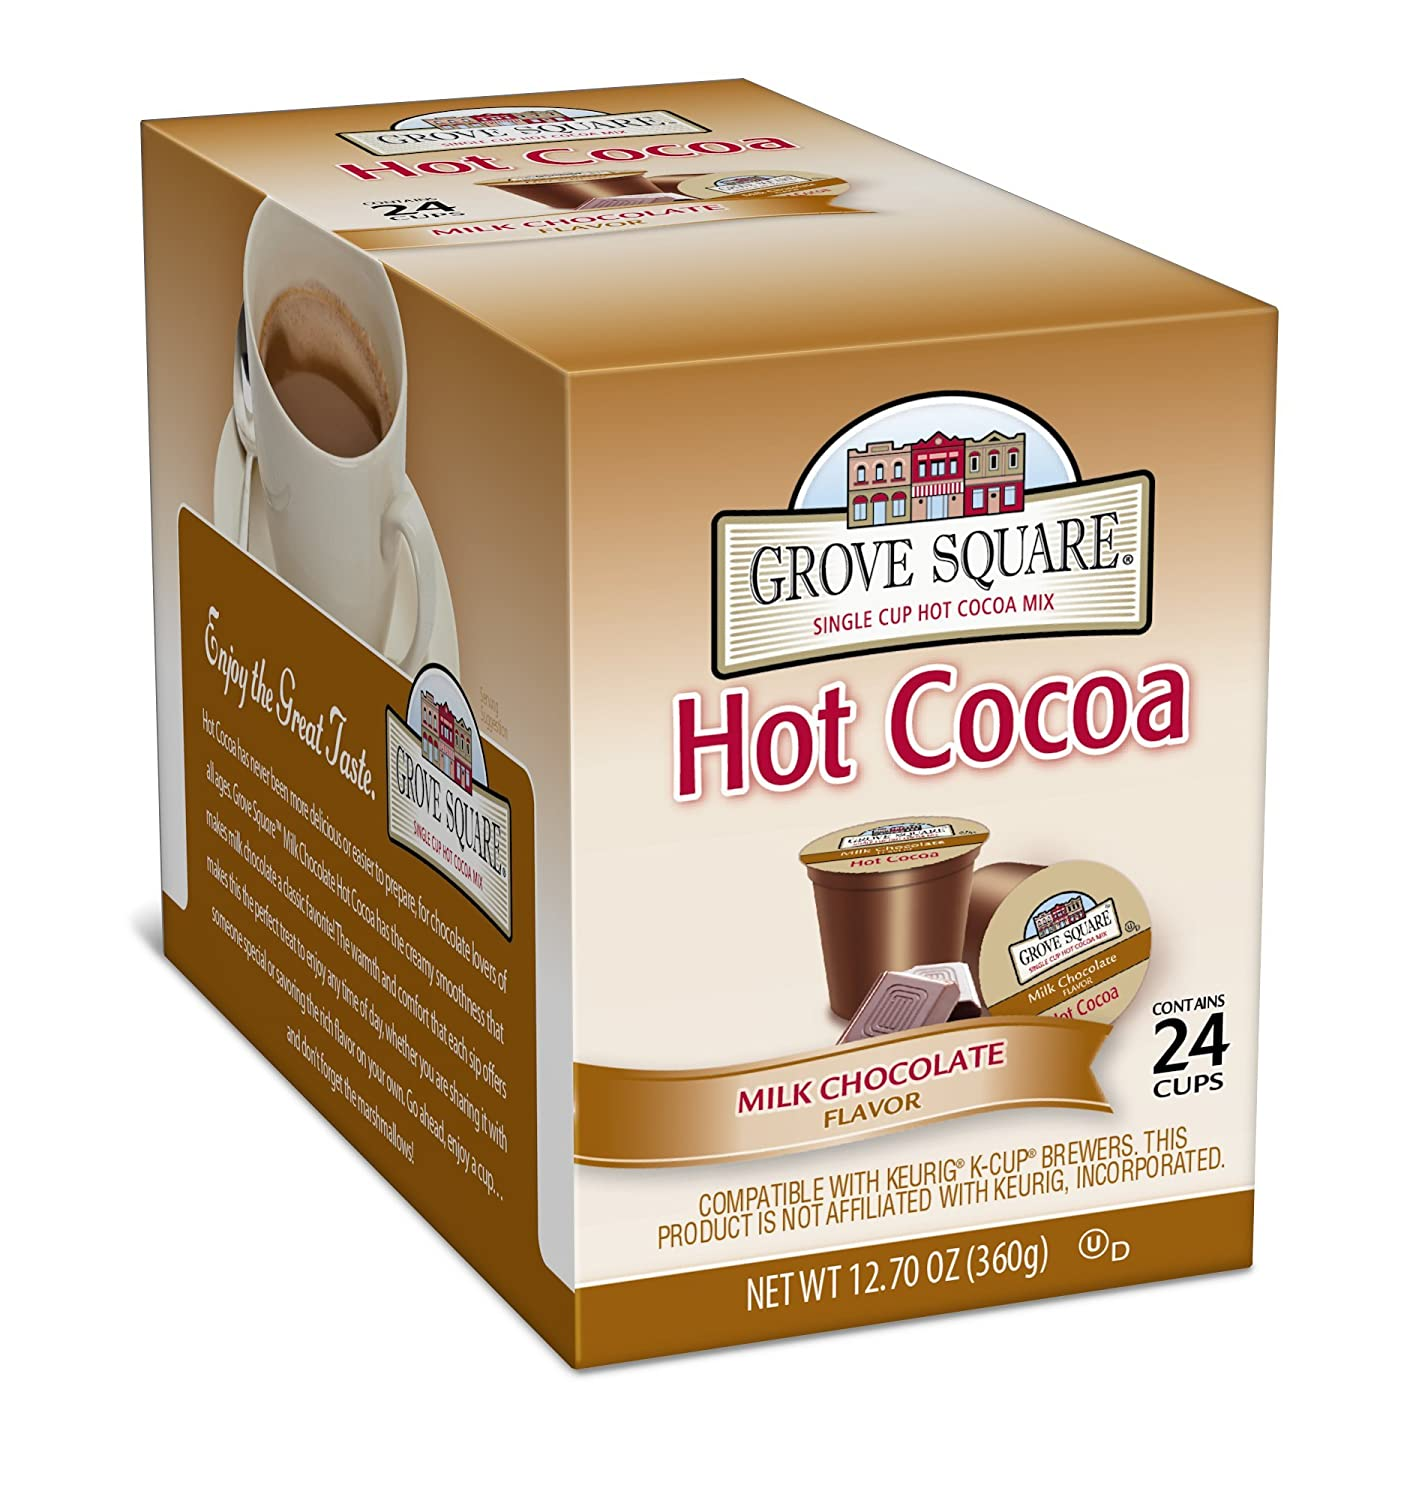 Is Grove Square Hot Chocolate Gluten Free